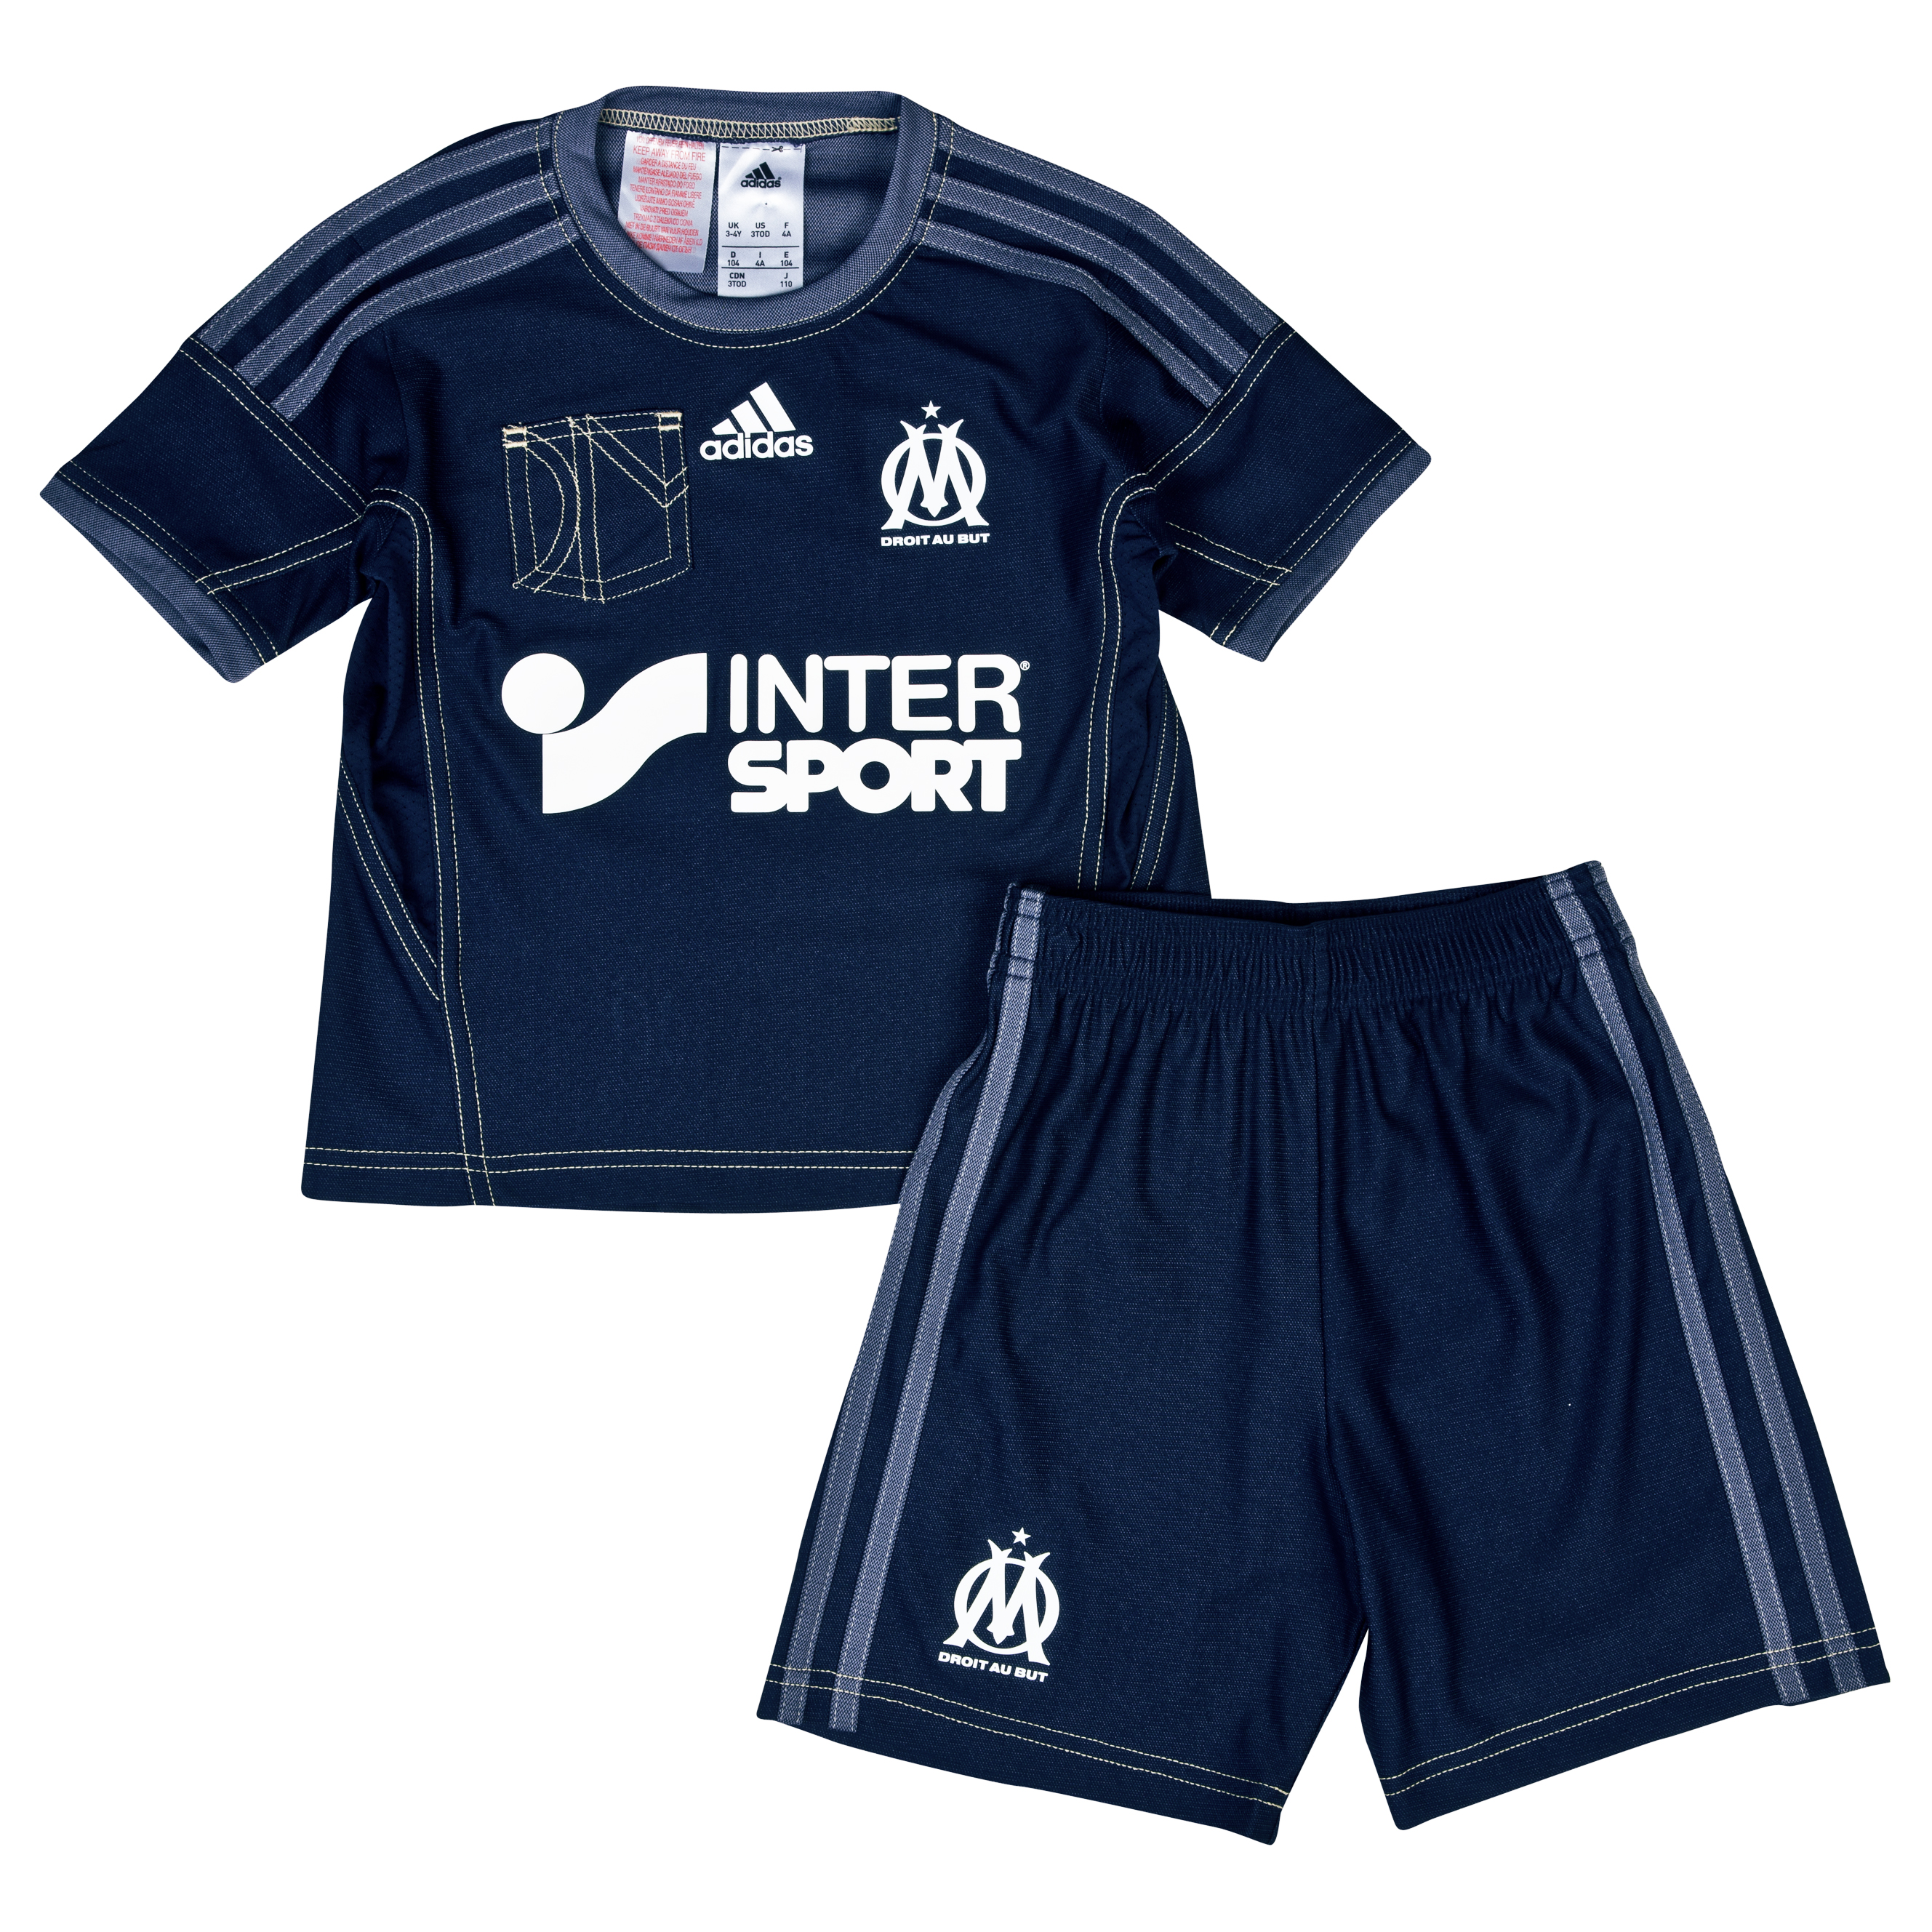 Olympique de Marseille Away Mini Kit 2013/14 Lt Blue